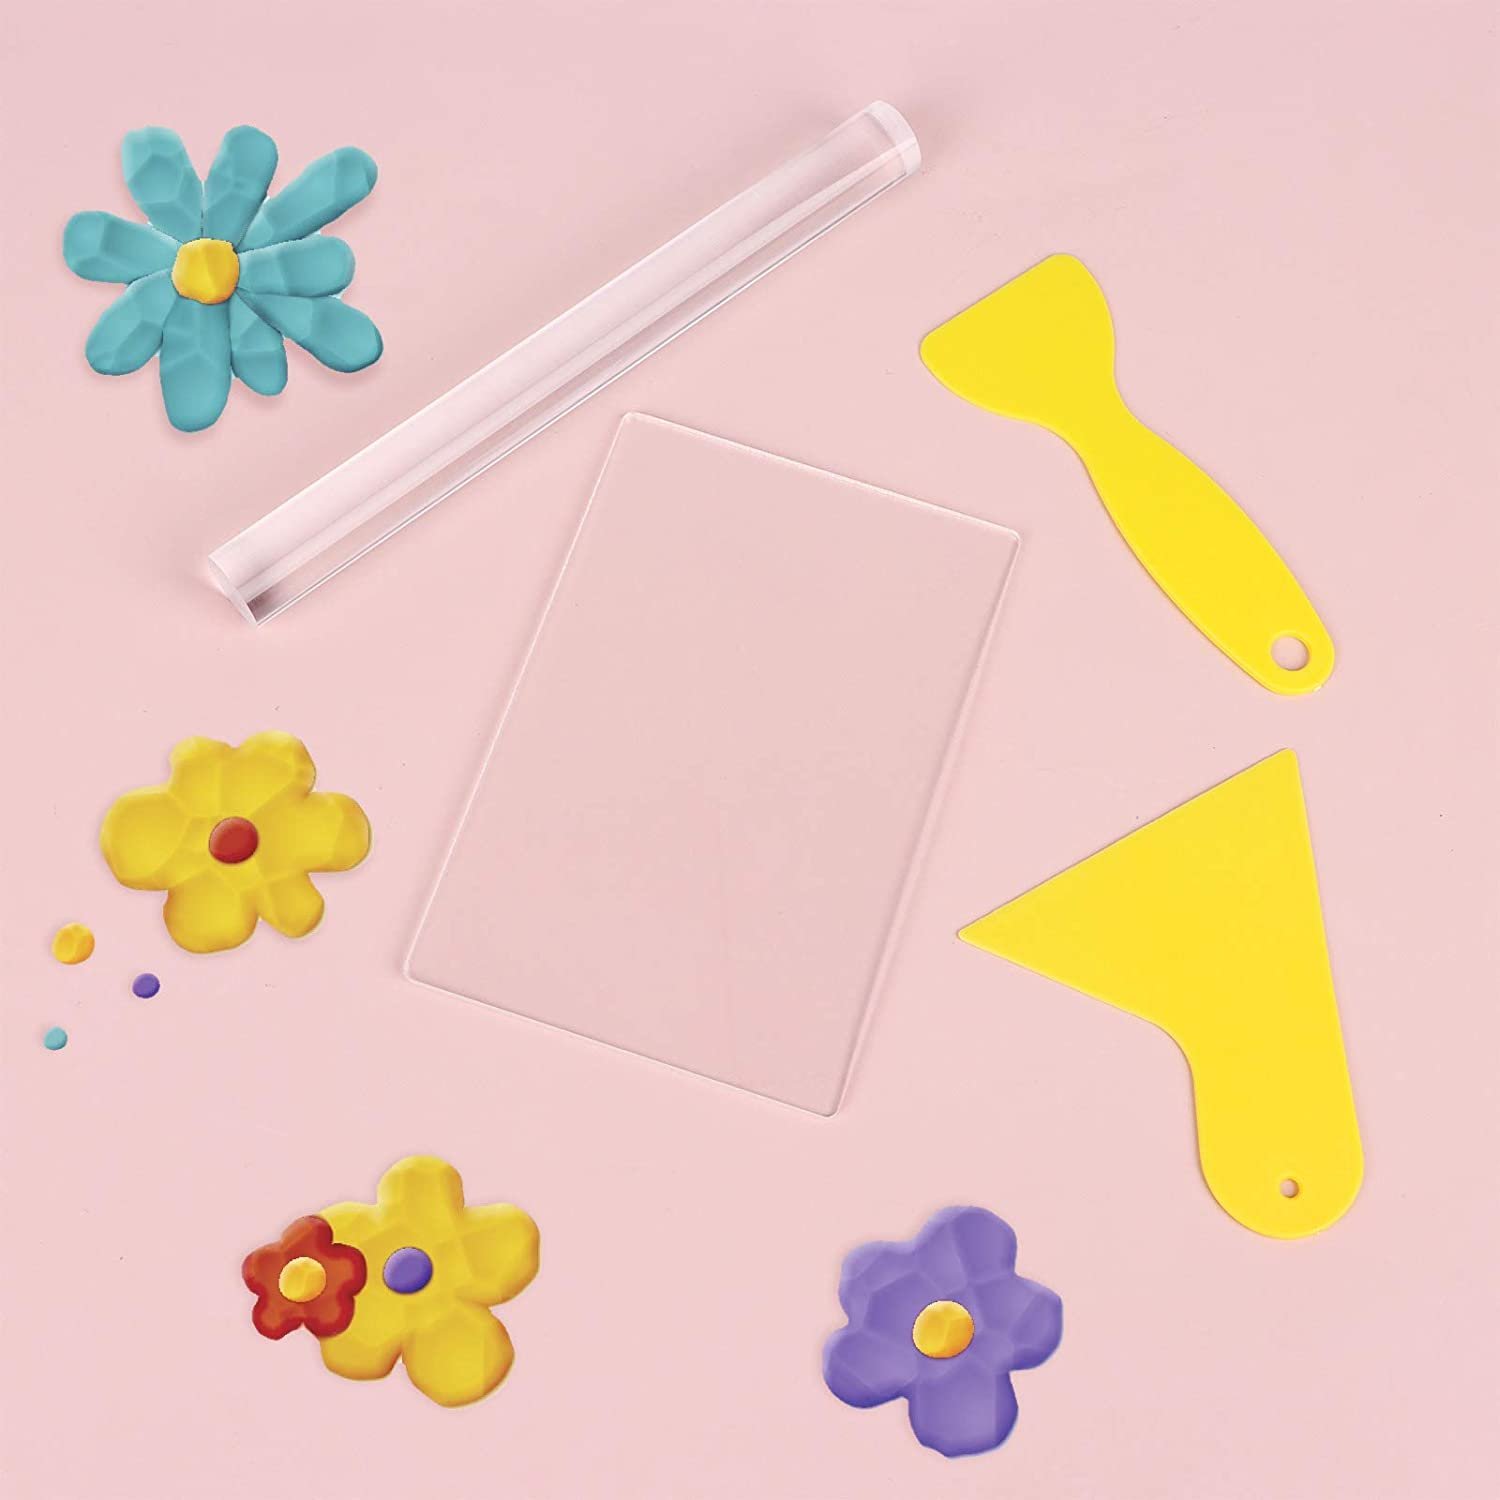 WayJaneDTP 7Pieces Acrylic Clay Roller with Acrylic Sheet Polymer Clay Cutters Rubber Clay Pottery Craft Tool for Clay DIY Making